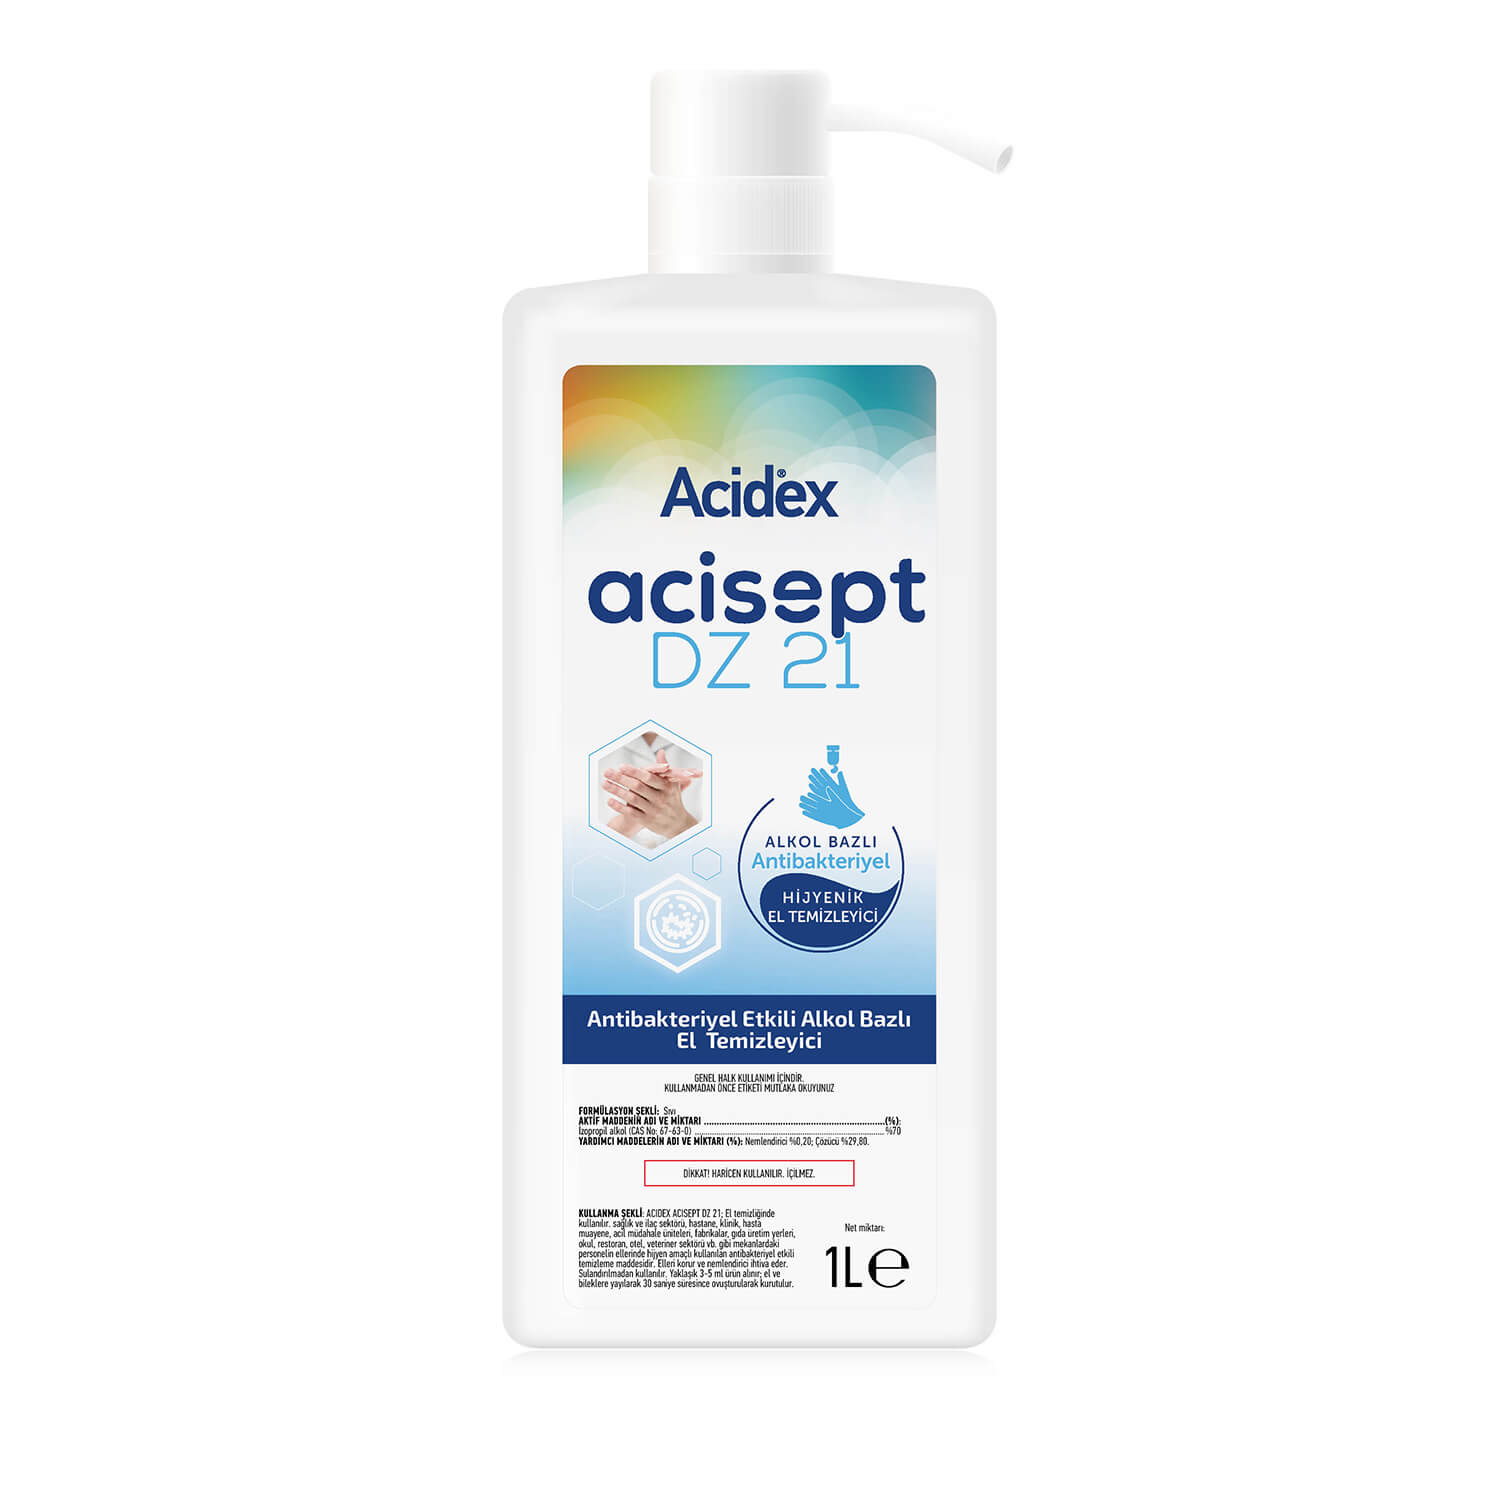 Acidex® Acisept DZ 21